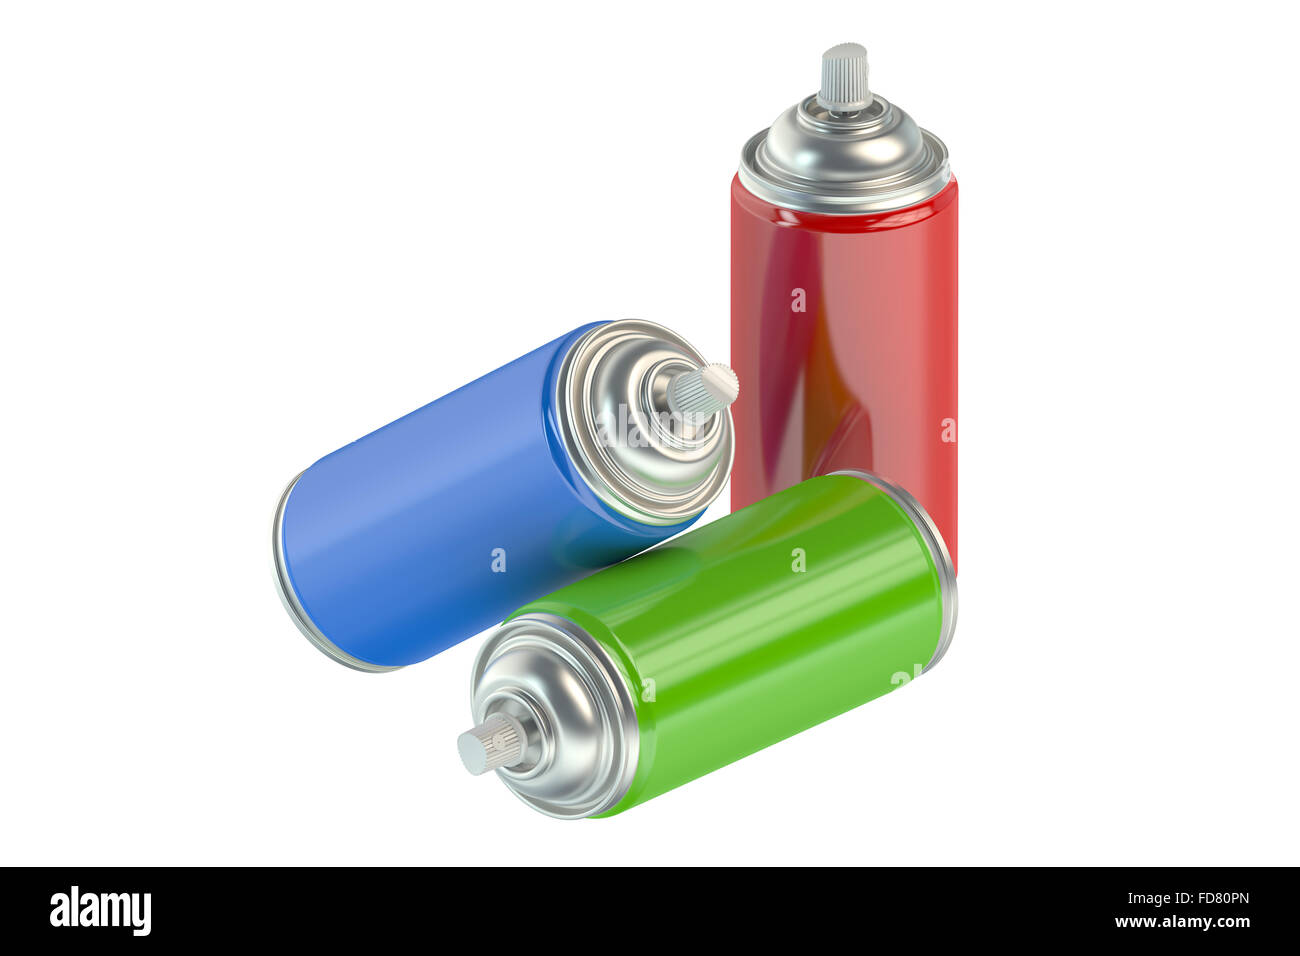 spray paint cans isolated on white background Stock Photo